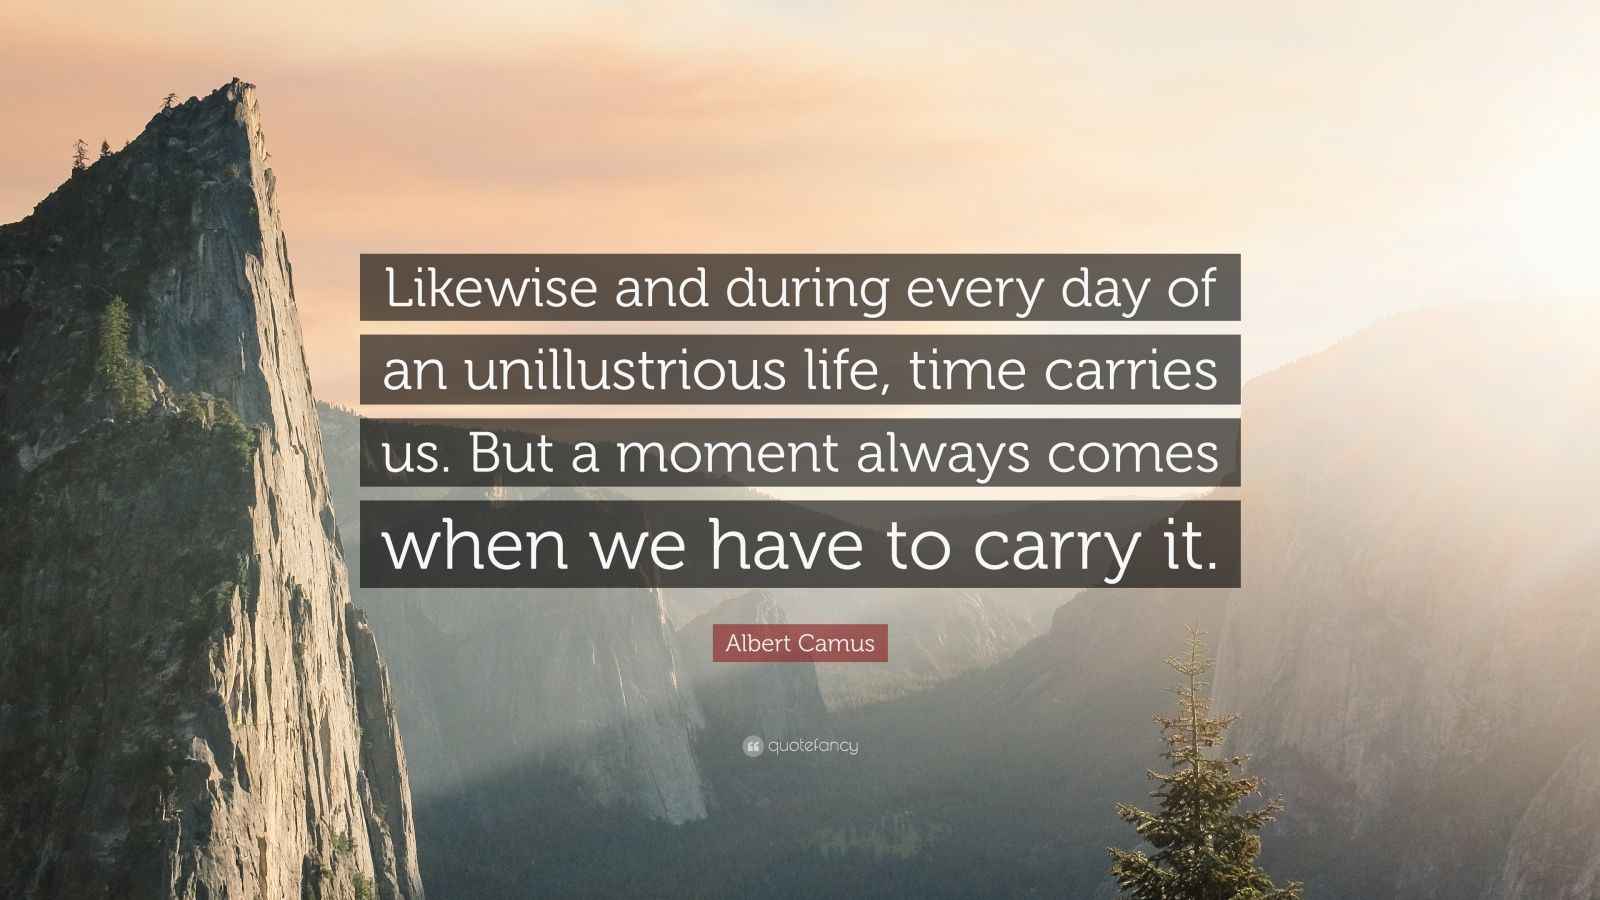 """Albert Camus Quote: """"Likewise and during every day of an unillustrious life, time carries us. But a moment always comes when we have to carry it."""""""